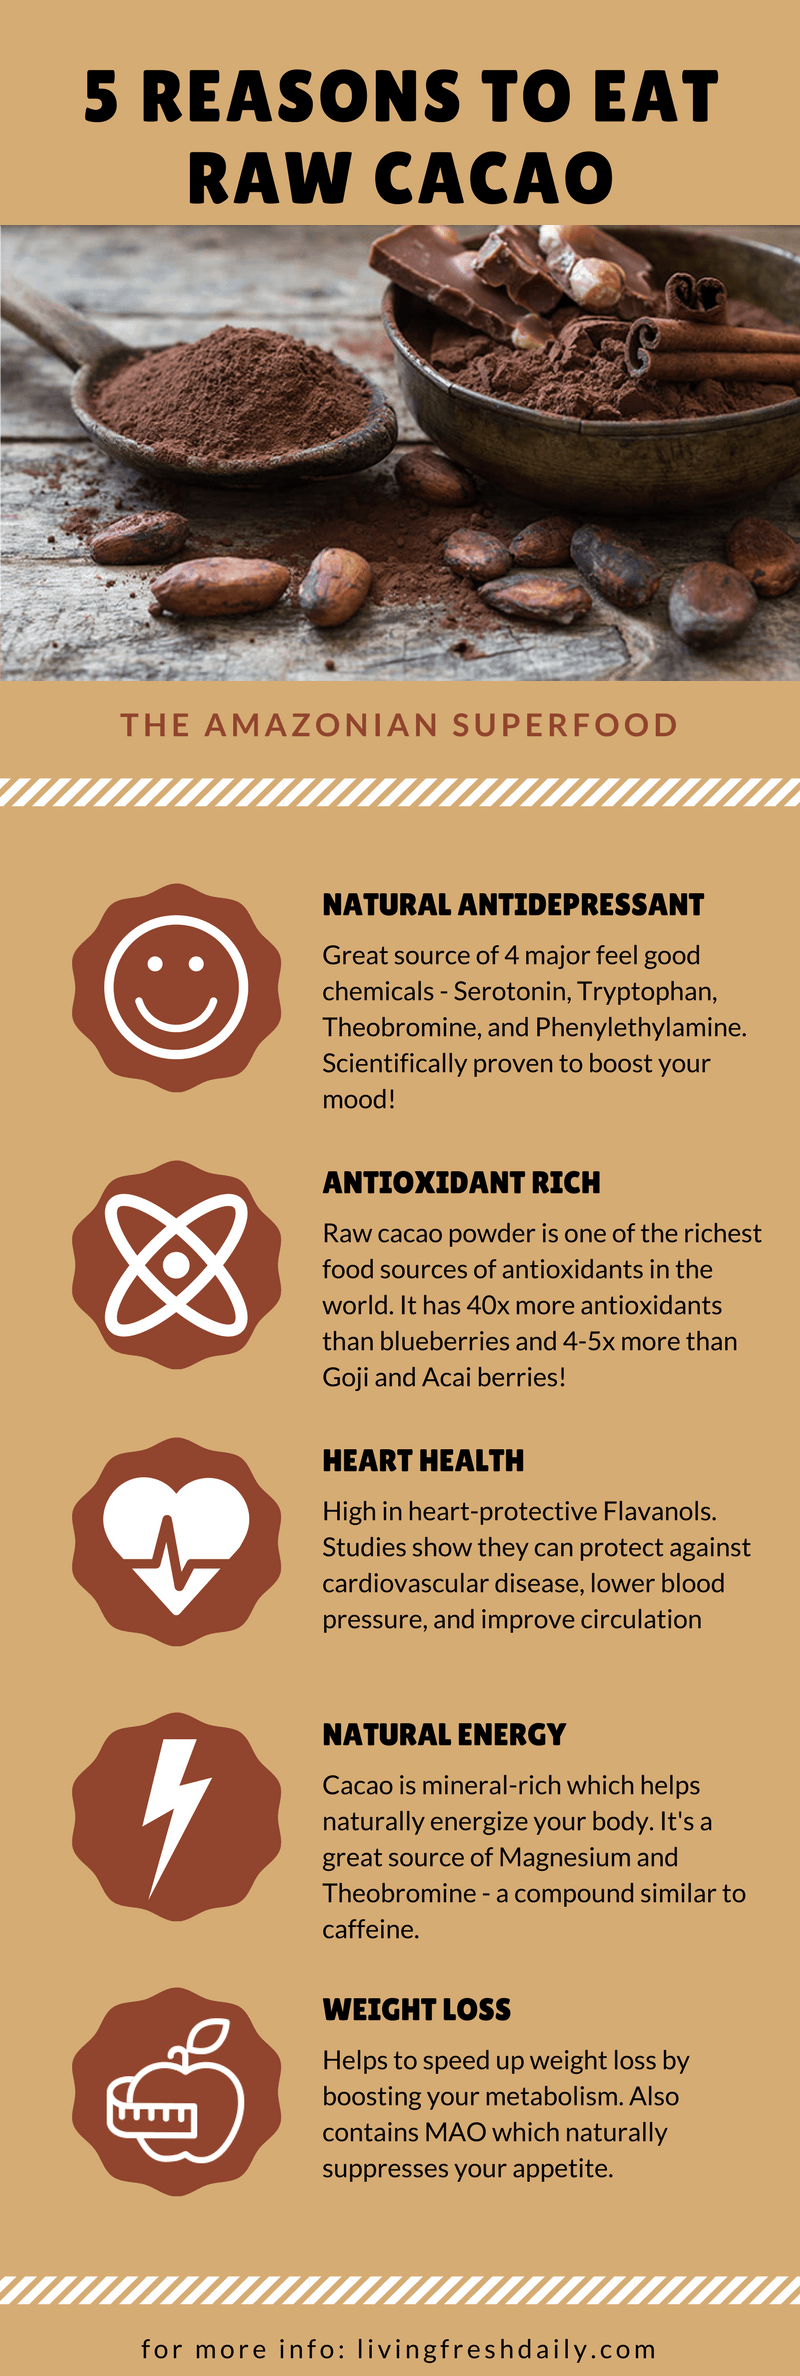 Raw Cacao Health Benefits